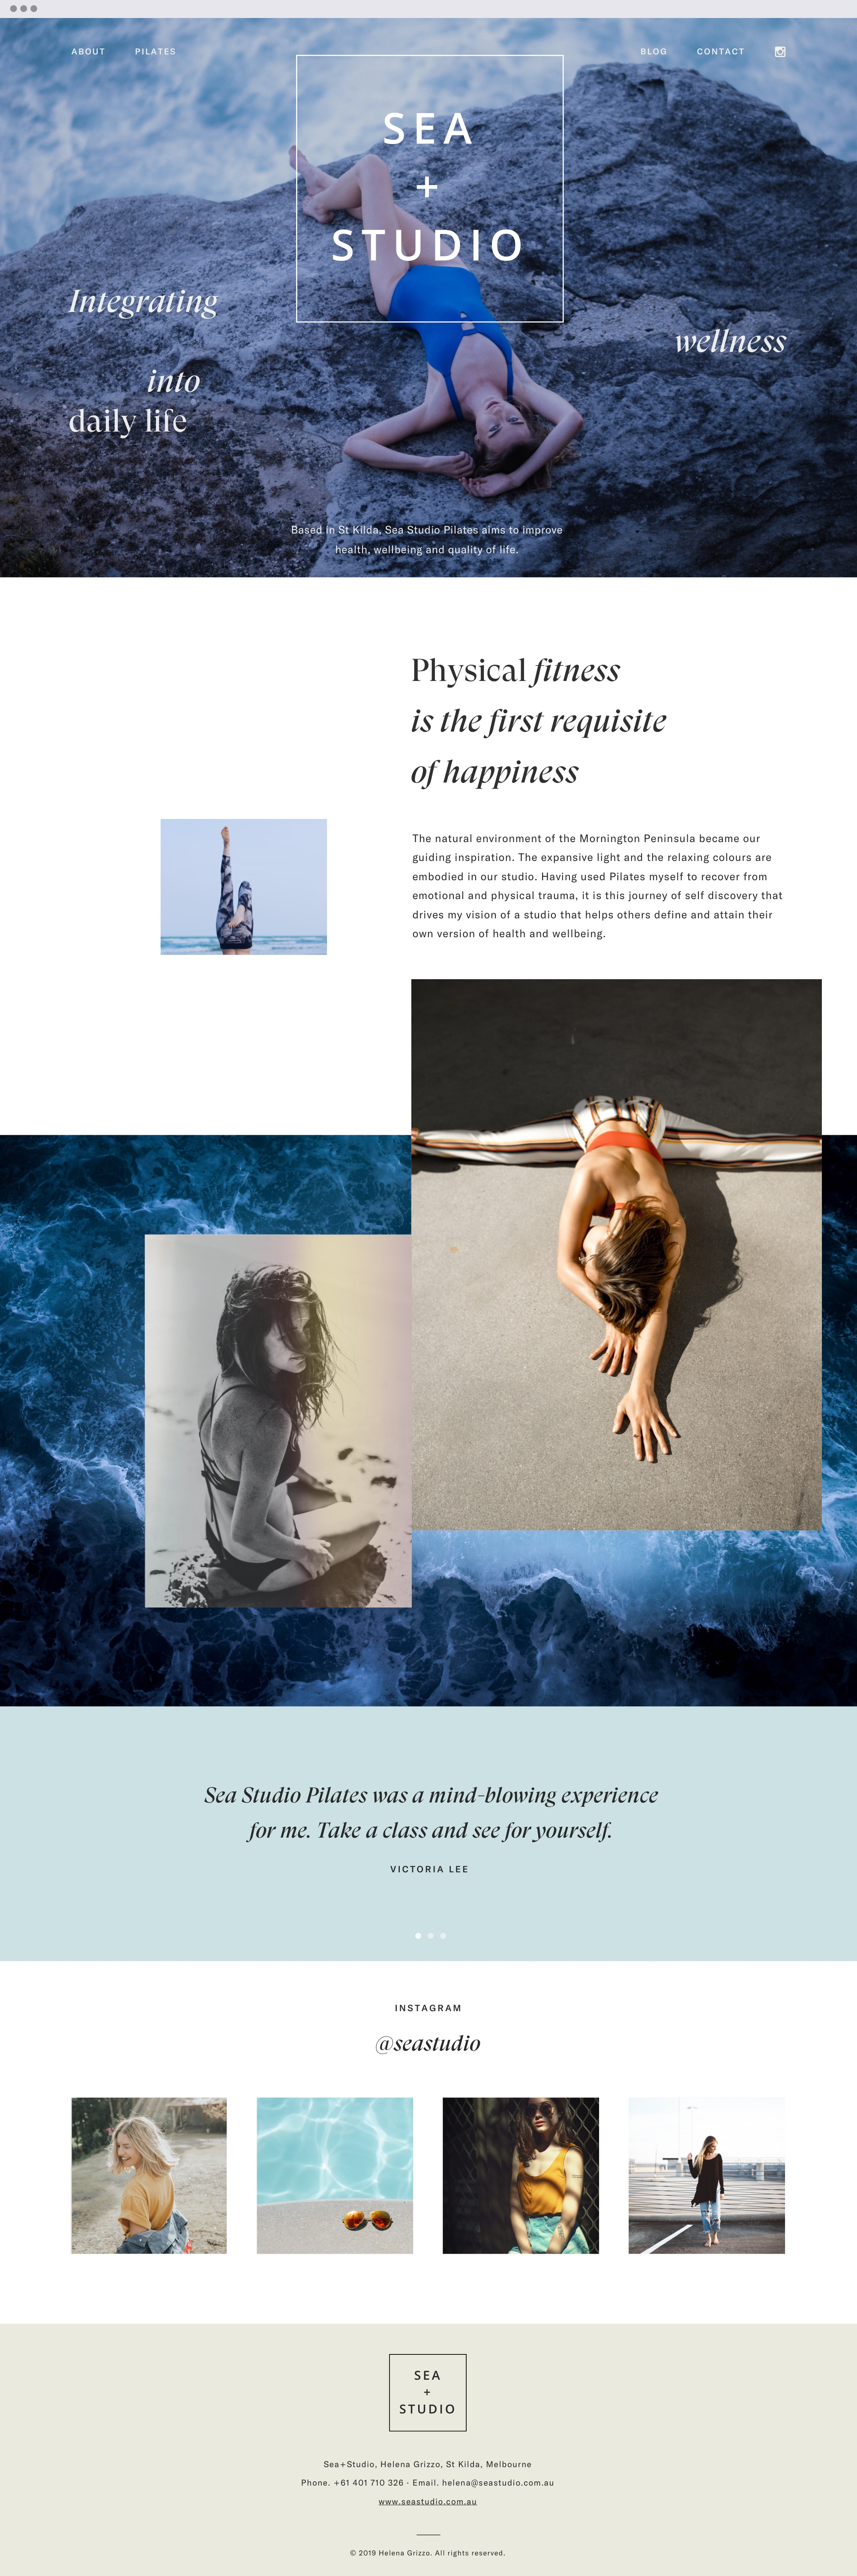 Webdesign for a pilates studio by the sea